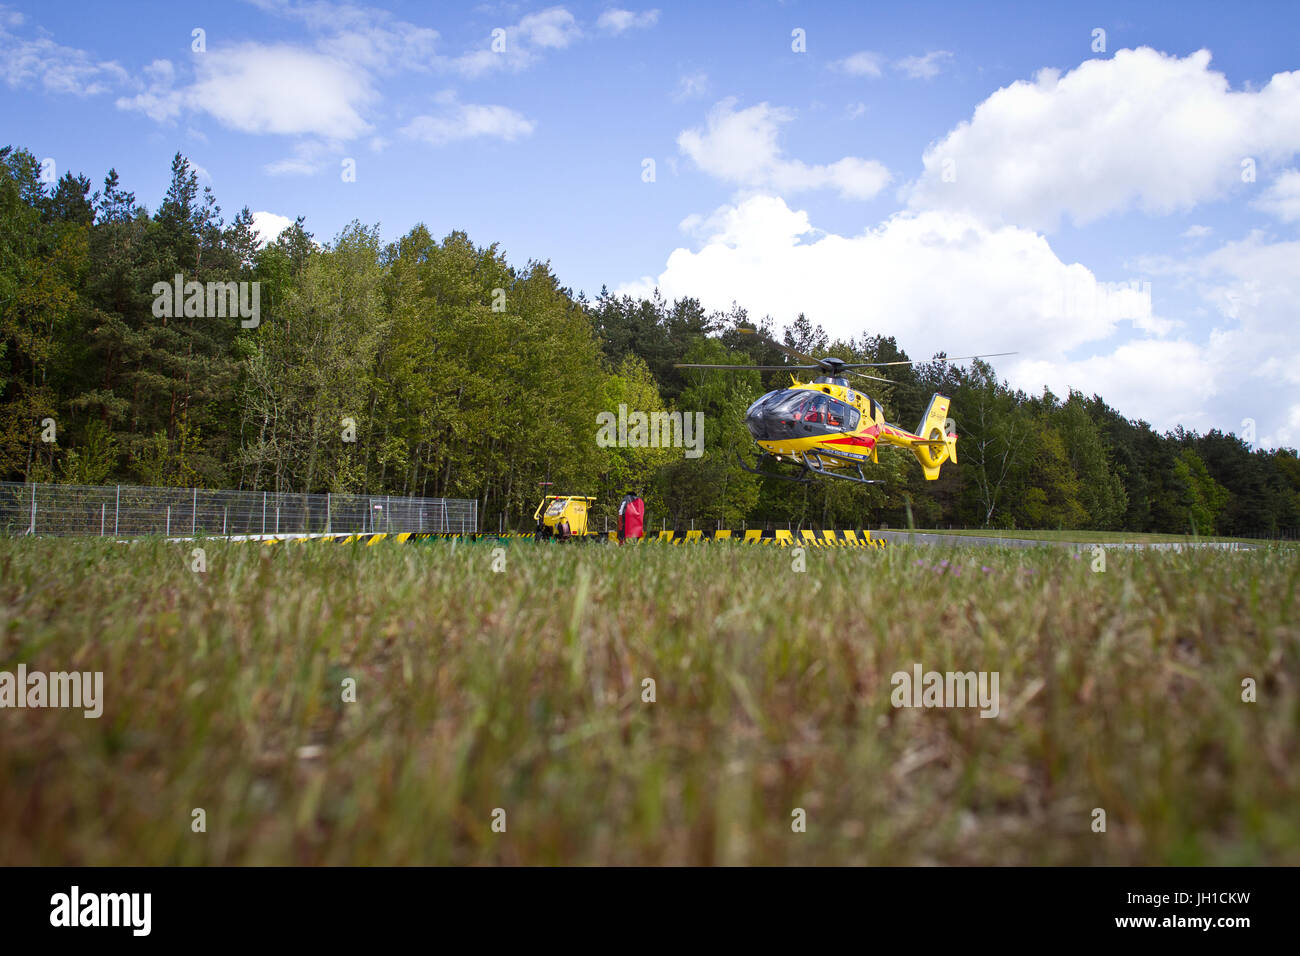 Polish Helicopter Emergency Medical Service (HEMS) Eurocopter 135 take off to action. Stock Photo